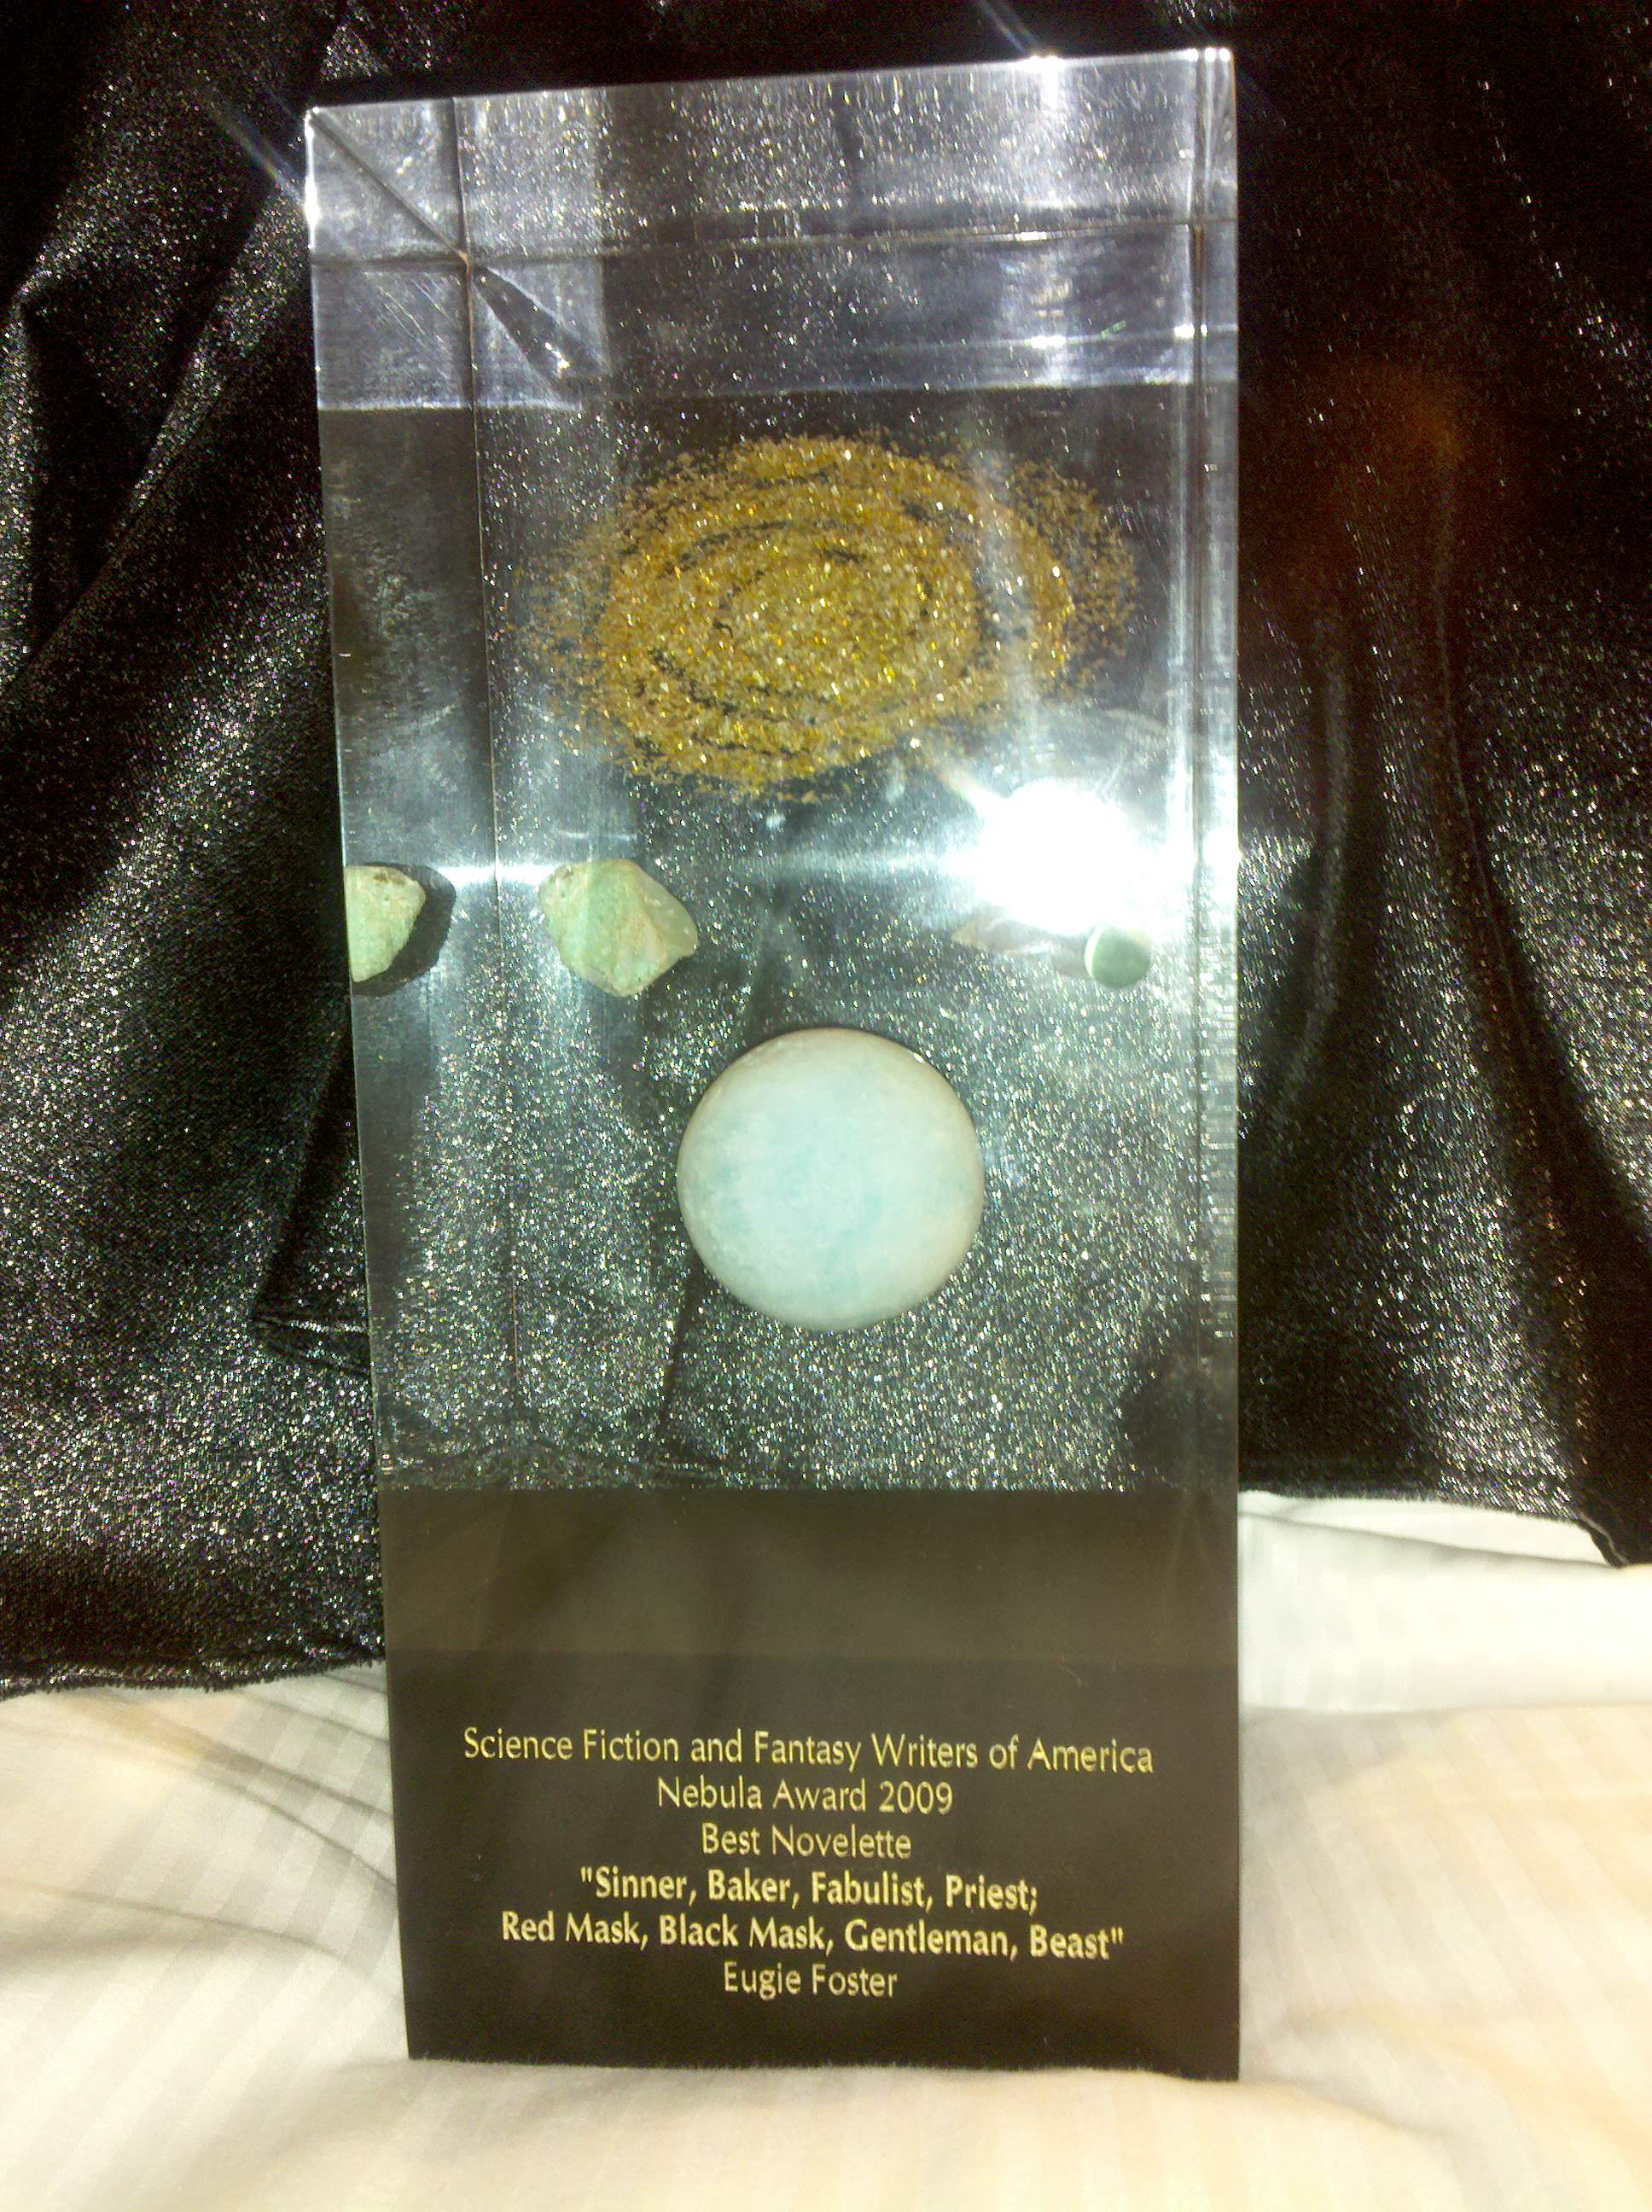 2009 Nebula Award for Best Novelette